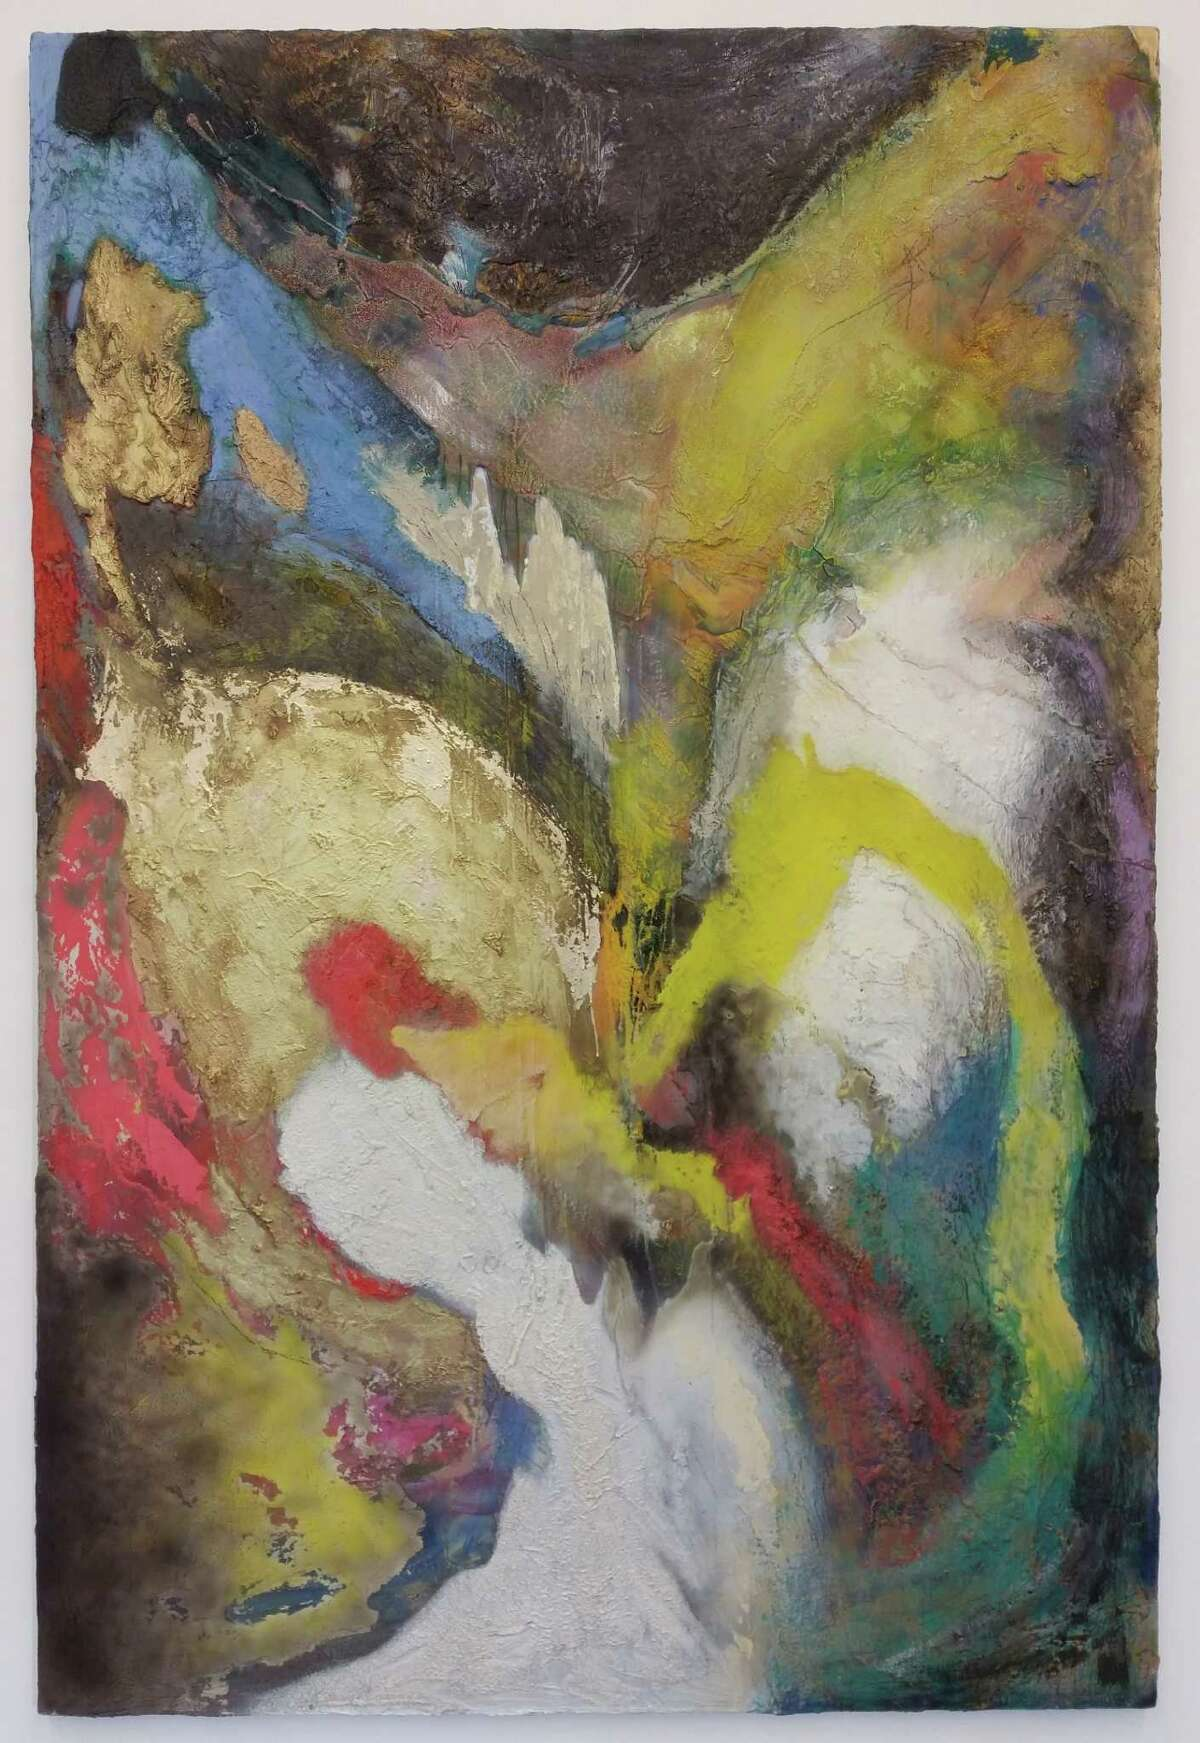 """Geoff Hippenstiel's lyrical """"Huffer"""" swirls with the energy of a bold palette and dense impasto."""